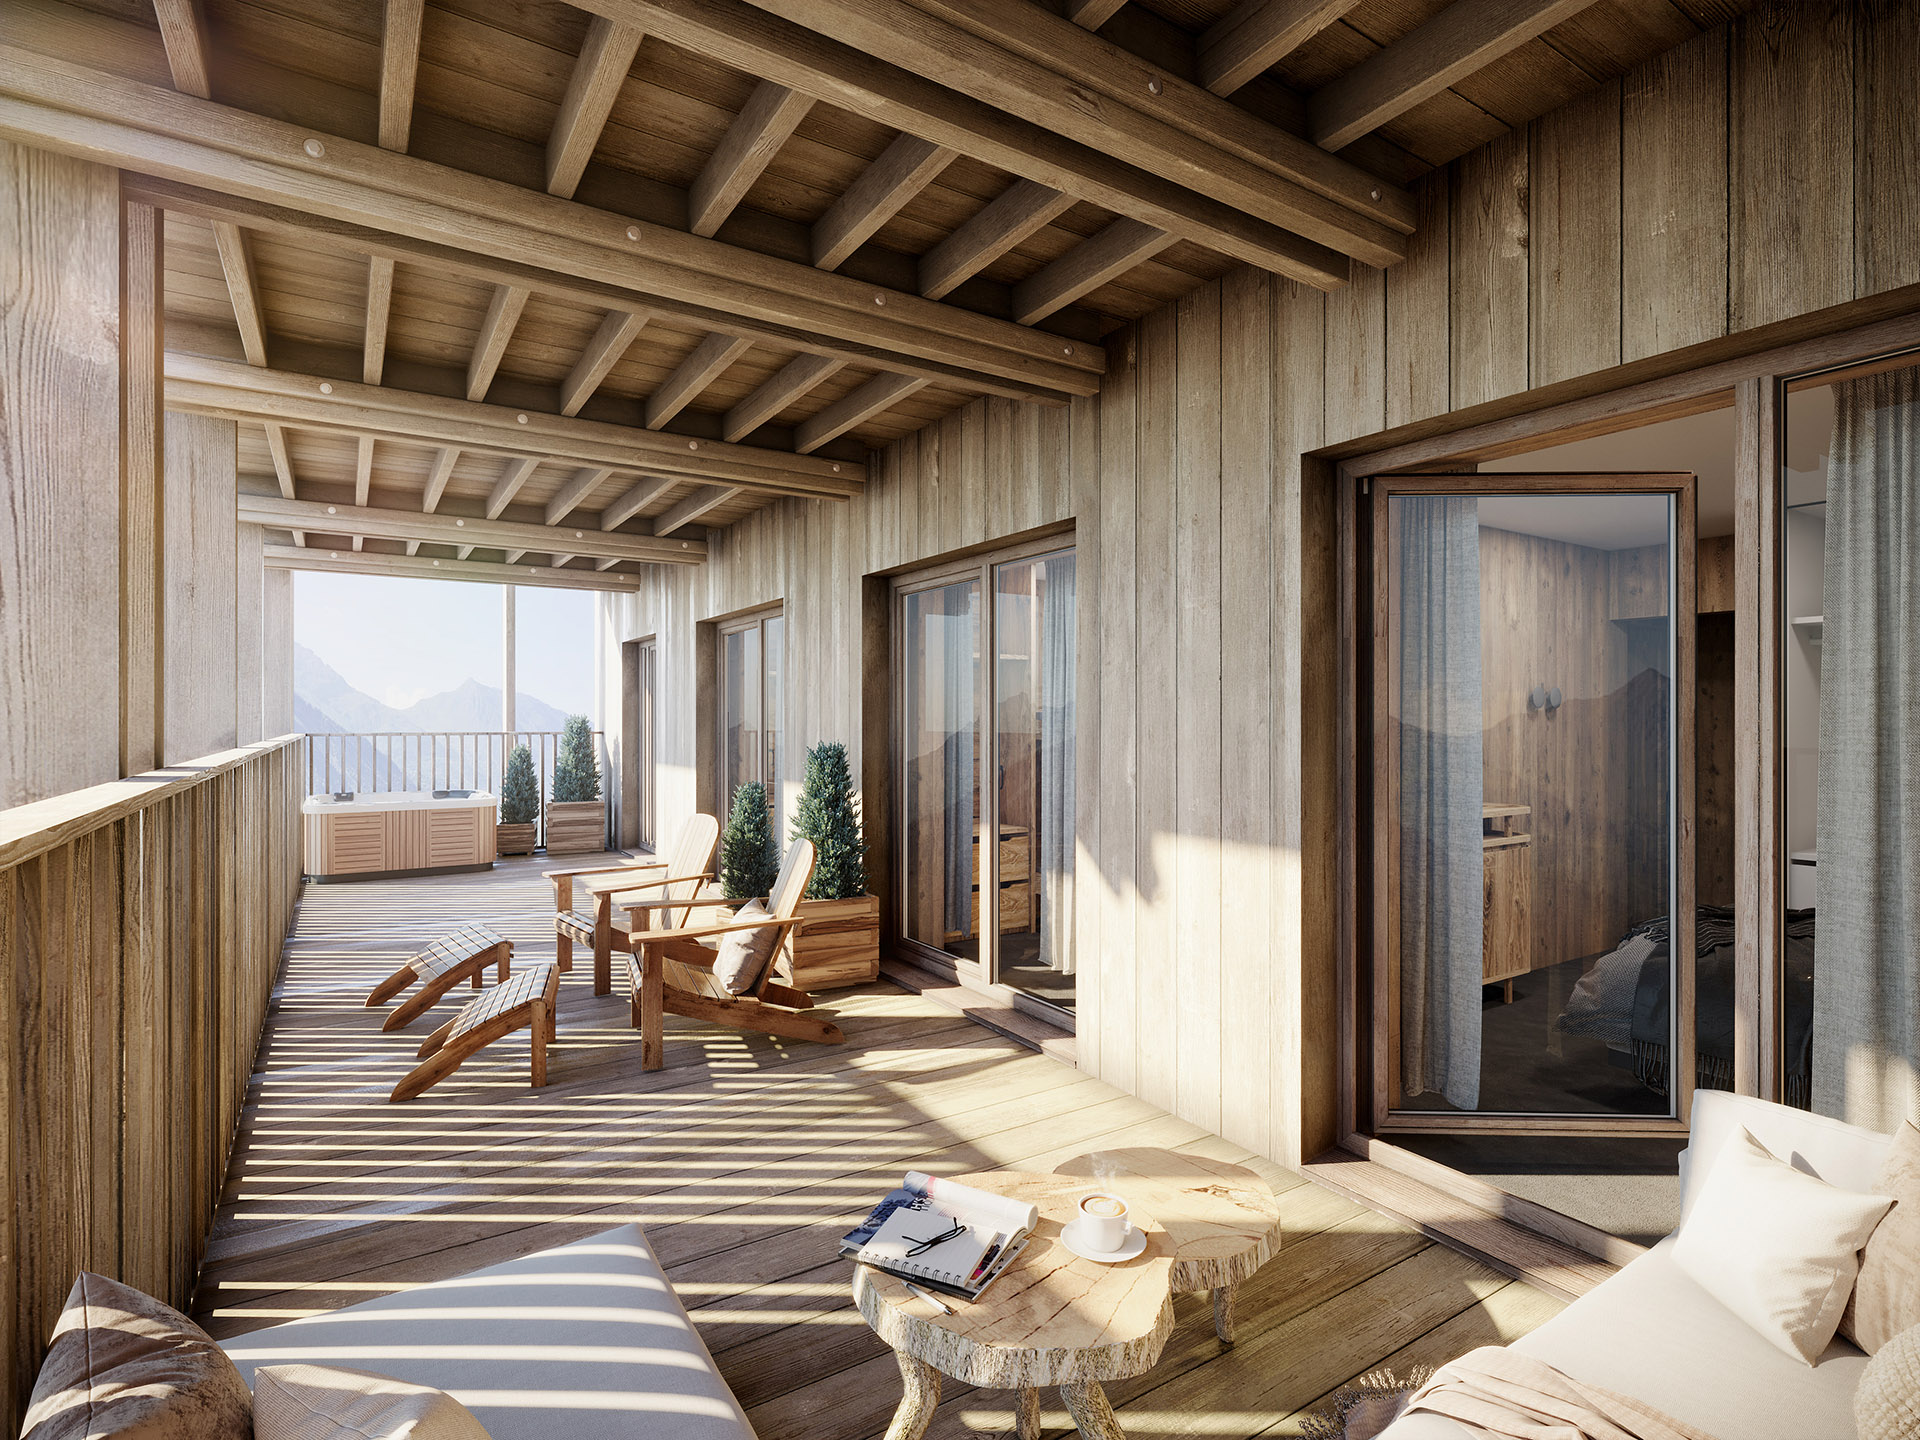 3D computer generated image of a chalet terrace